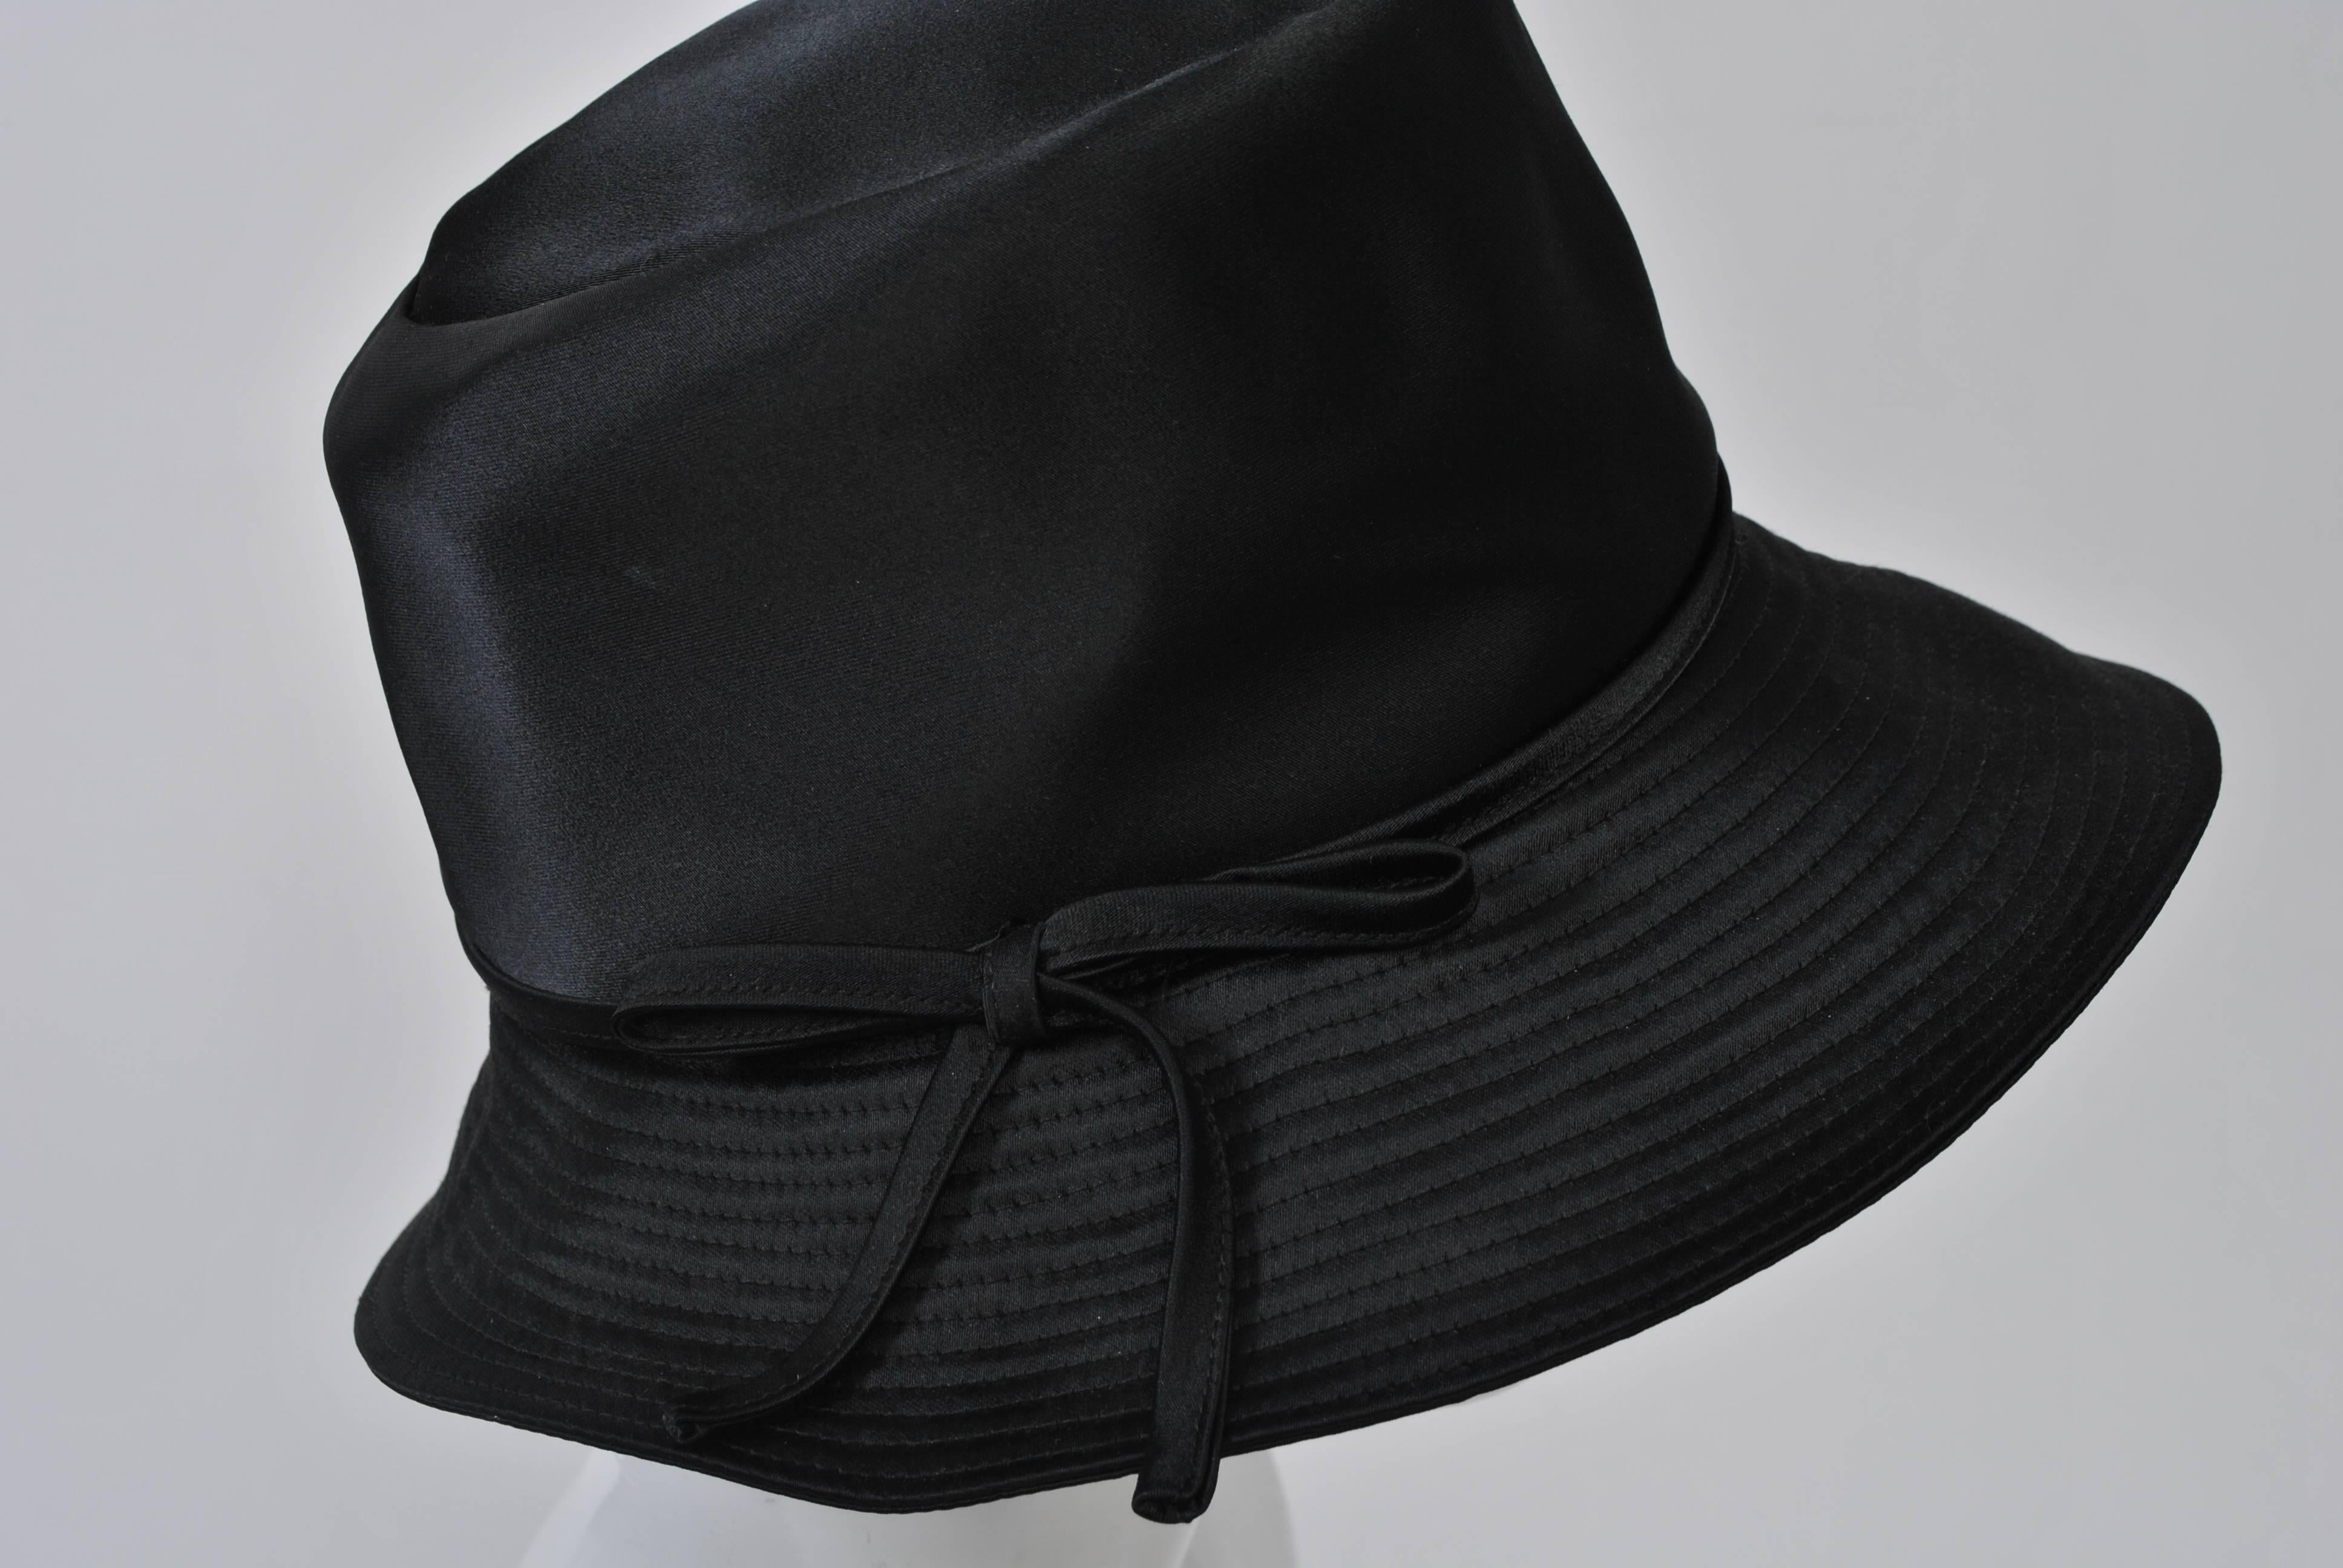 f81a700cfd9c7 Betmar Black Satin Hat For Sale at 1stdibs